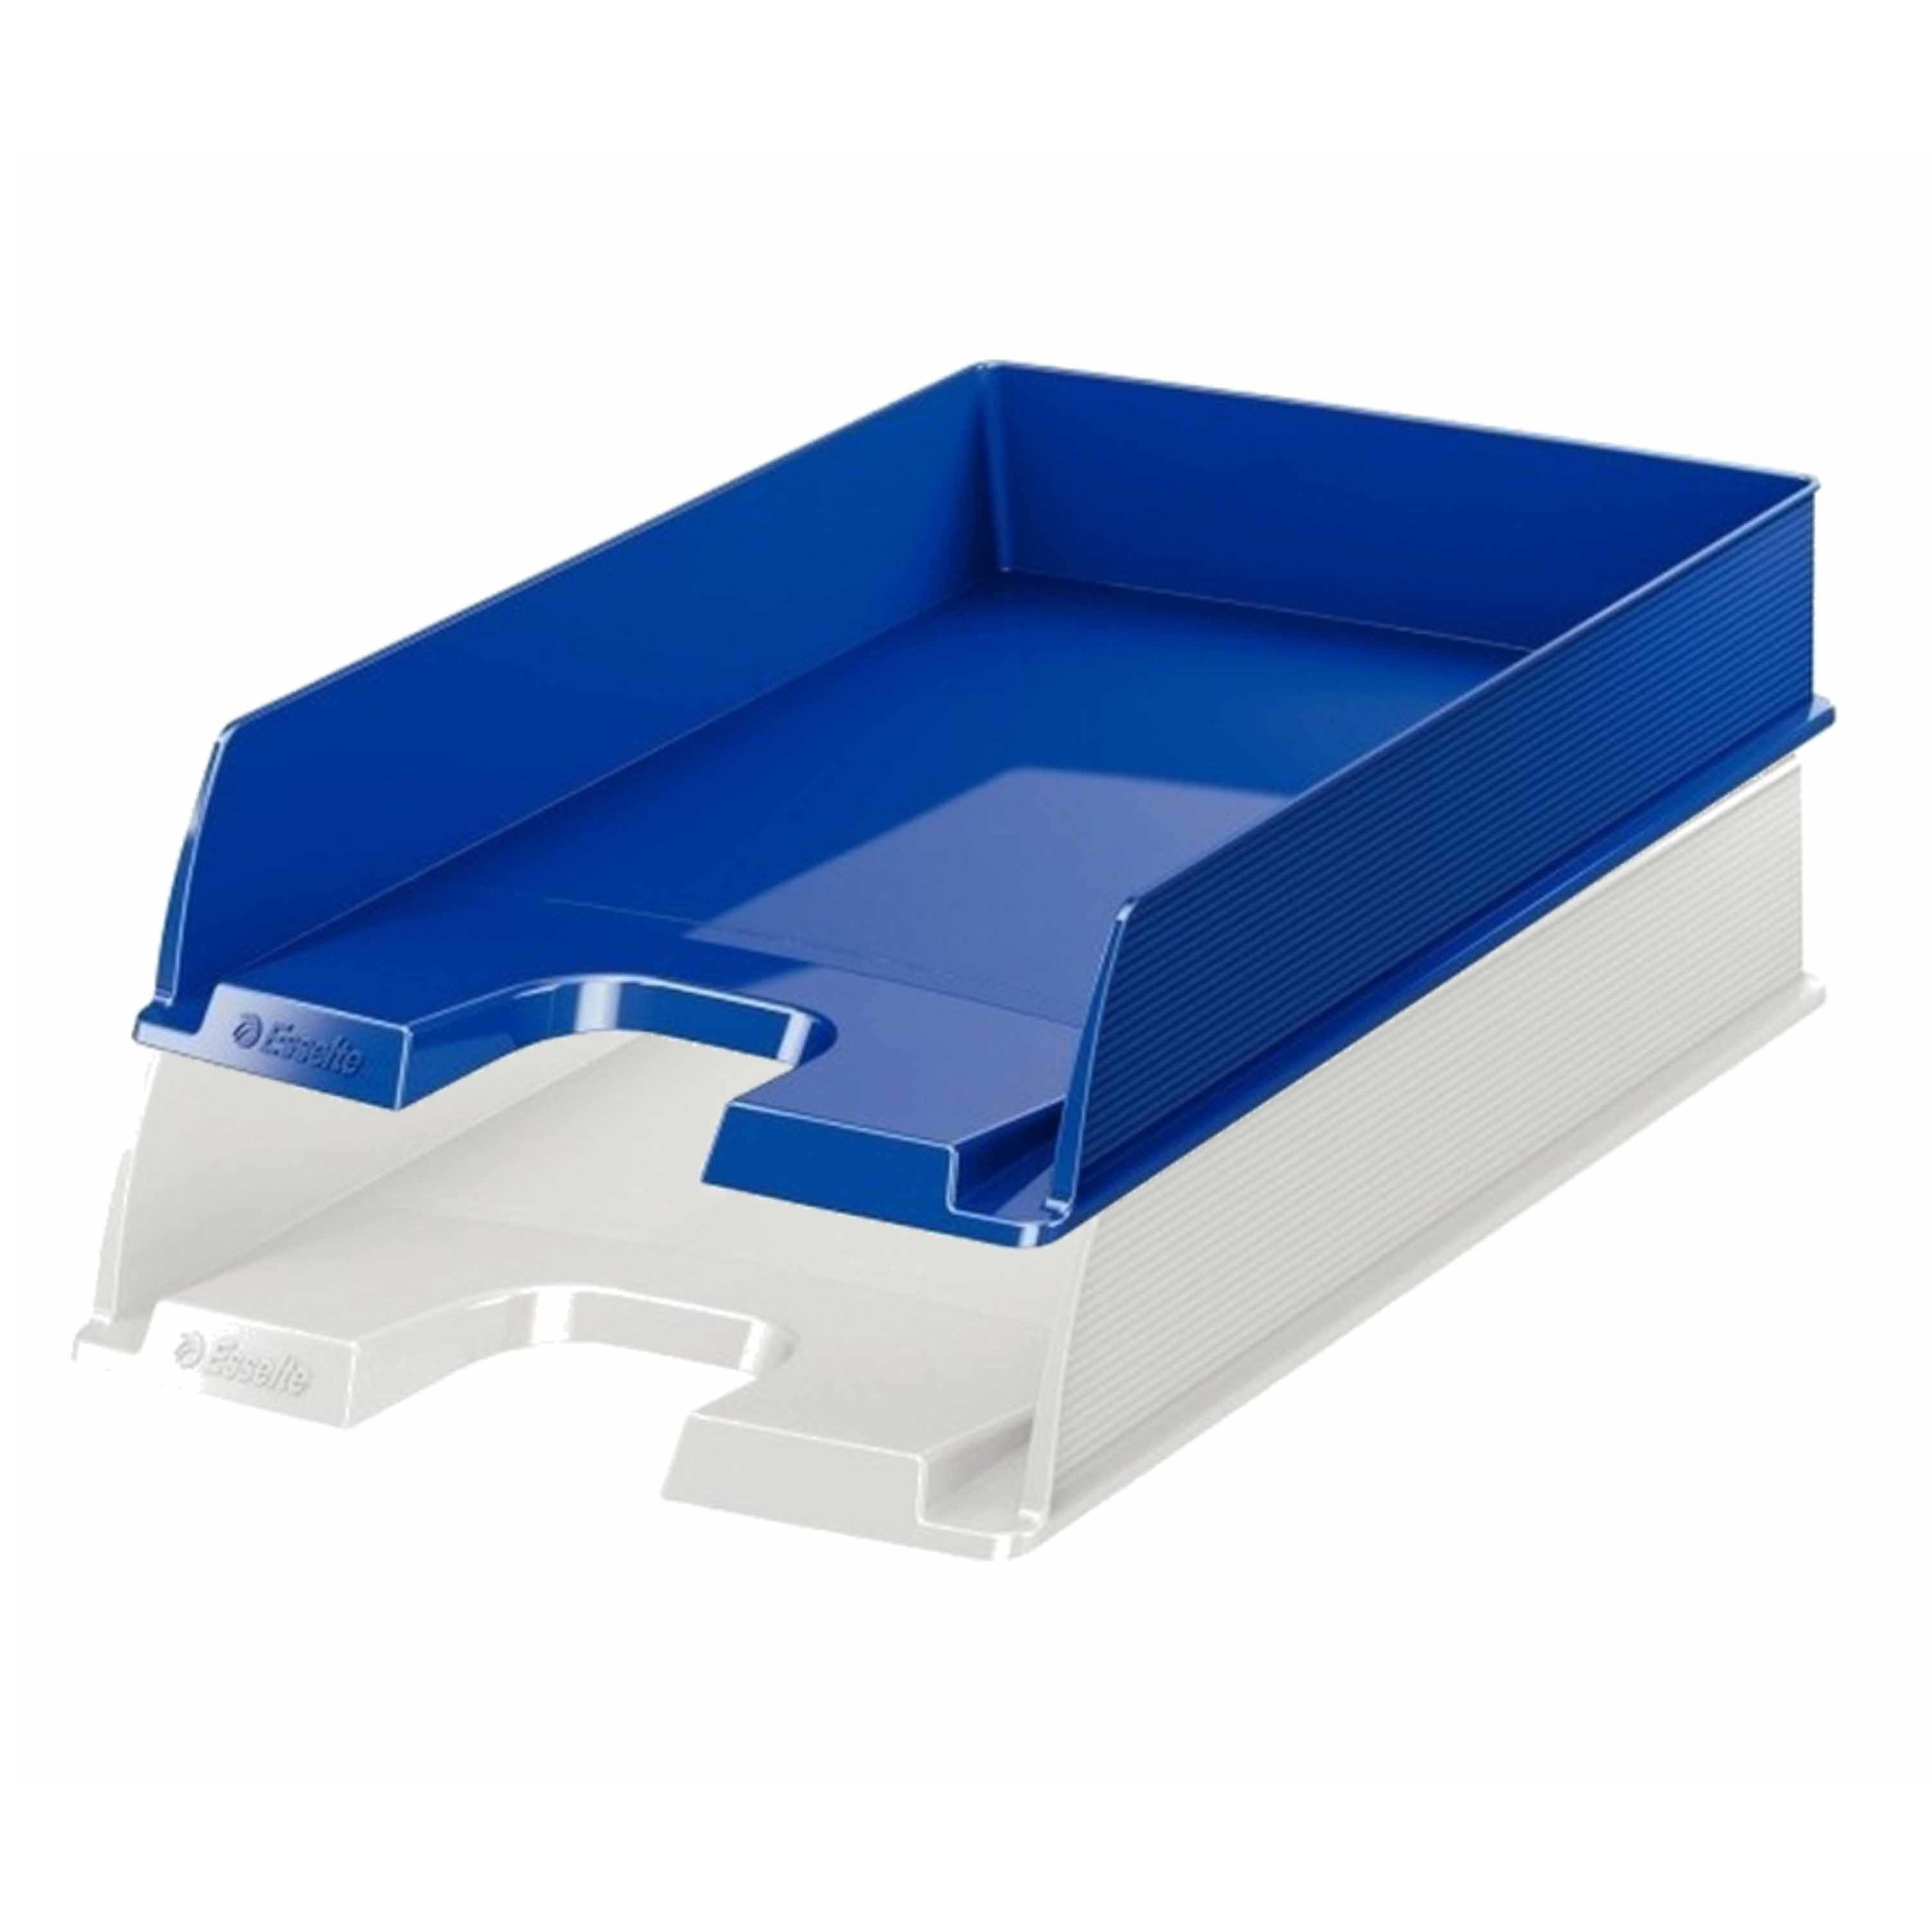 Esselte postbakjejes set van 4x blauw en 4x wit in a4 formaat